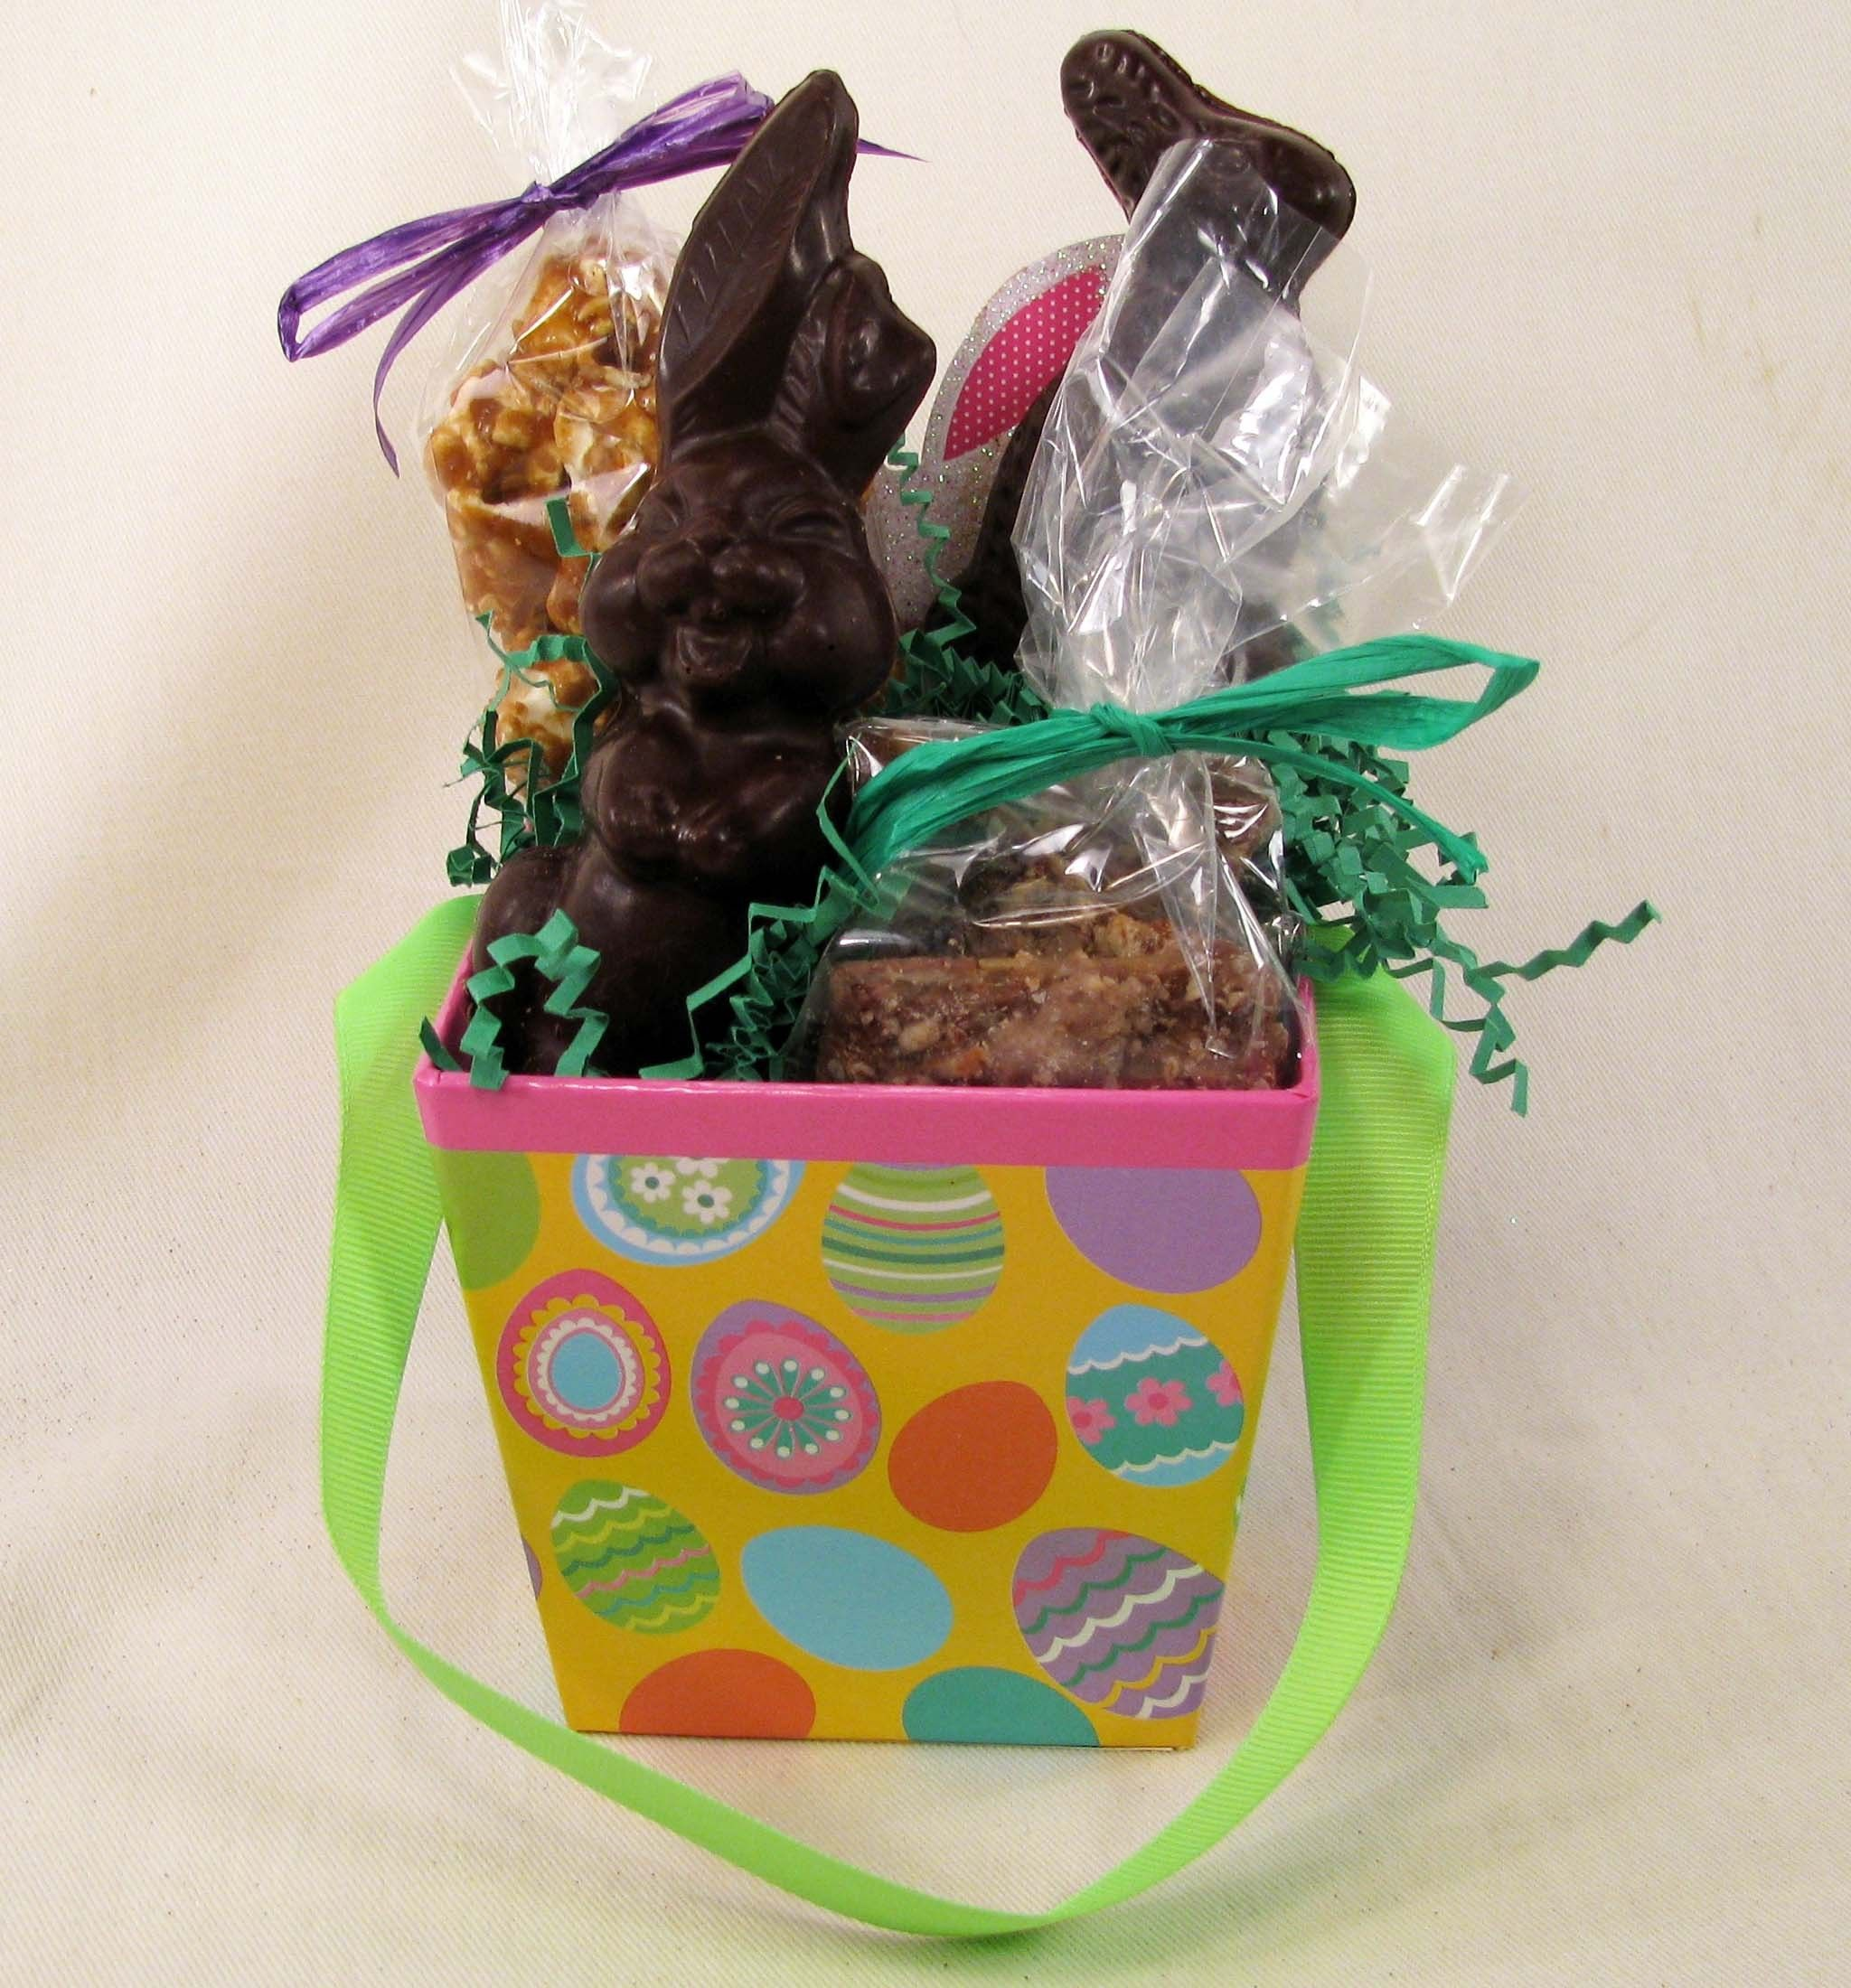 Vegan gourmet easter bunny basket our decadent gourmet vegan vegan gourmet easter bunny basket our decadent gourmet vegan easter bunny basket is filled with our negle Gallery